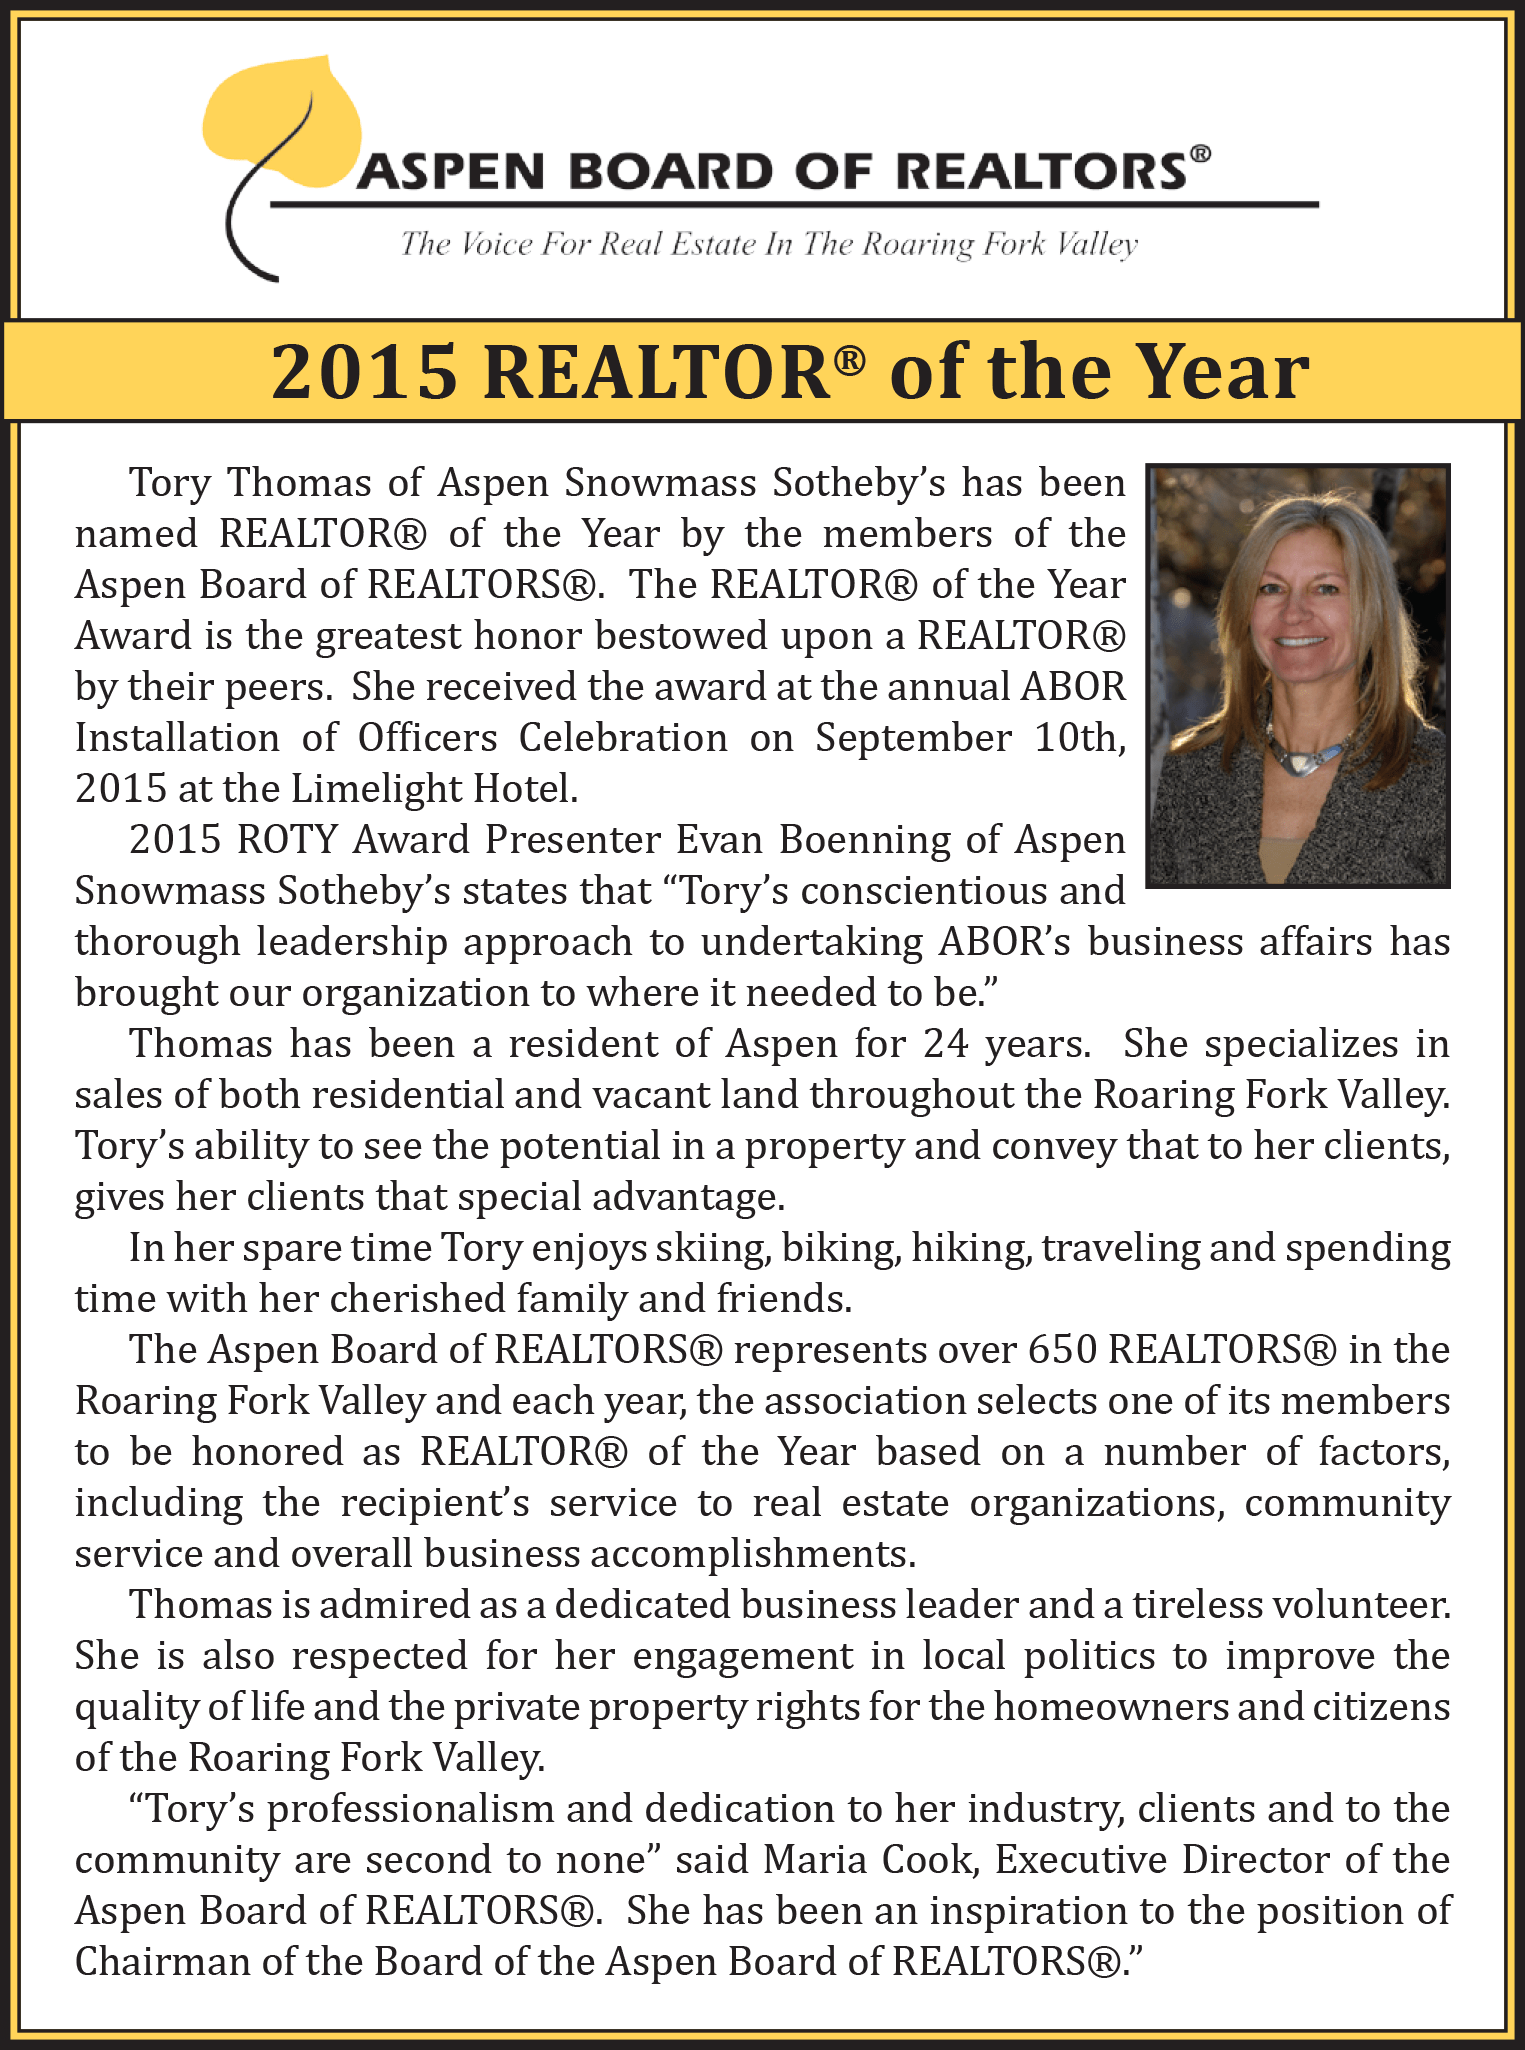 Tory Thomas, 2015 Realtor of the Year